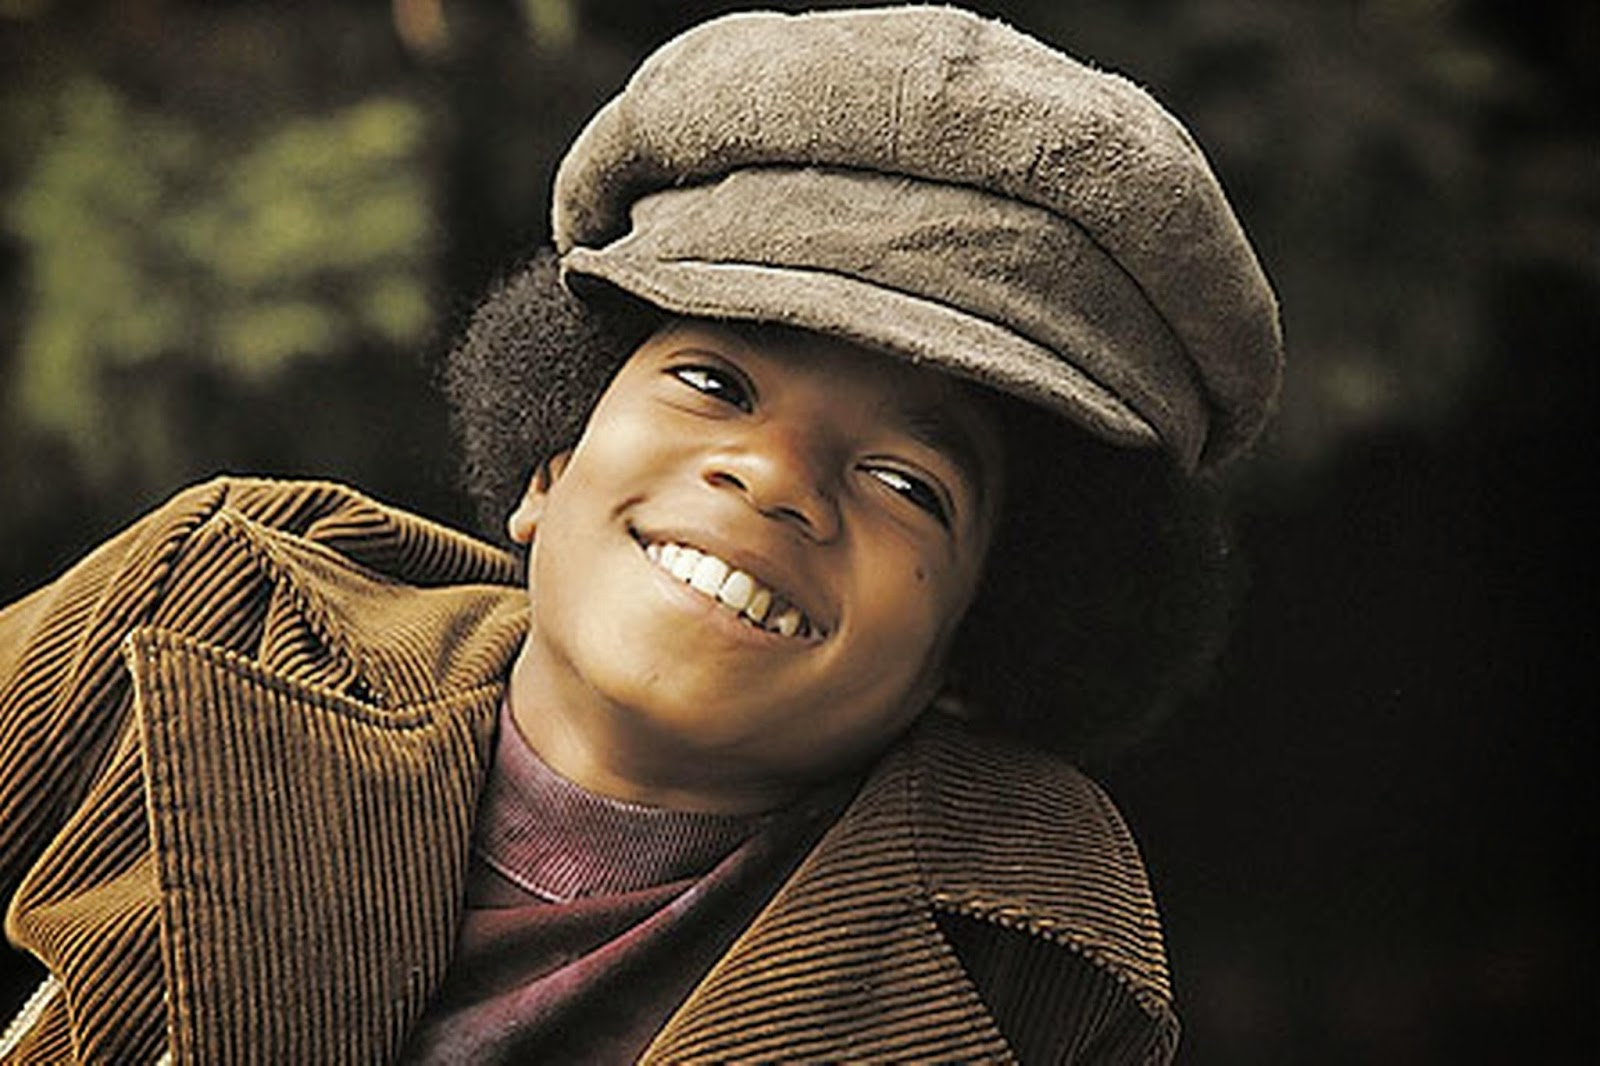 Child photo of Micheal Jackson